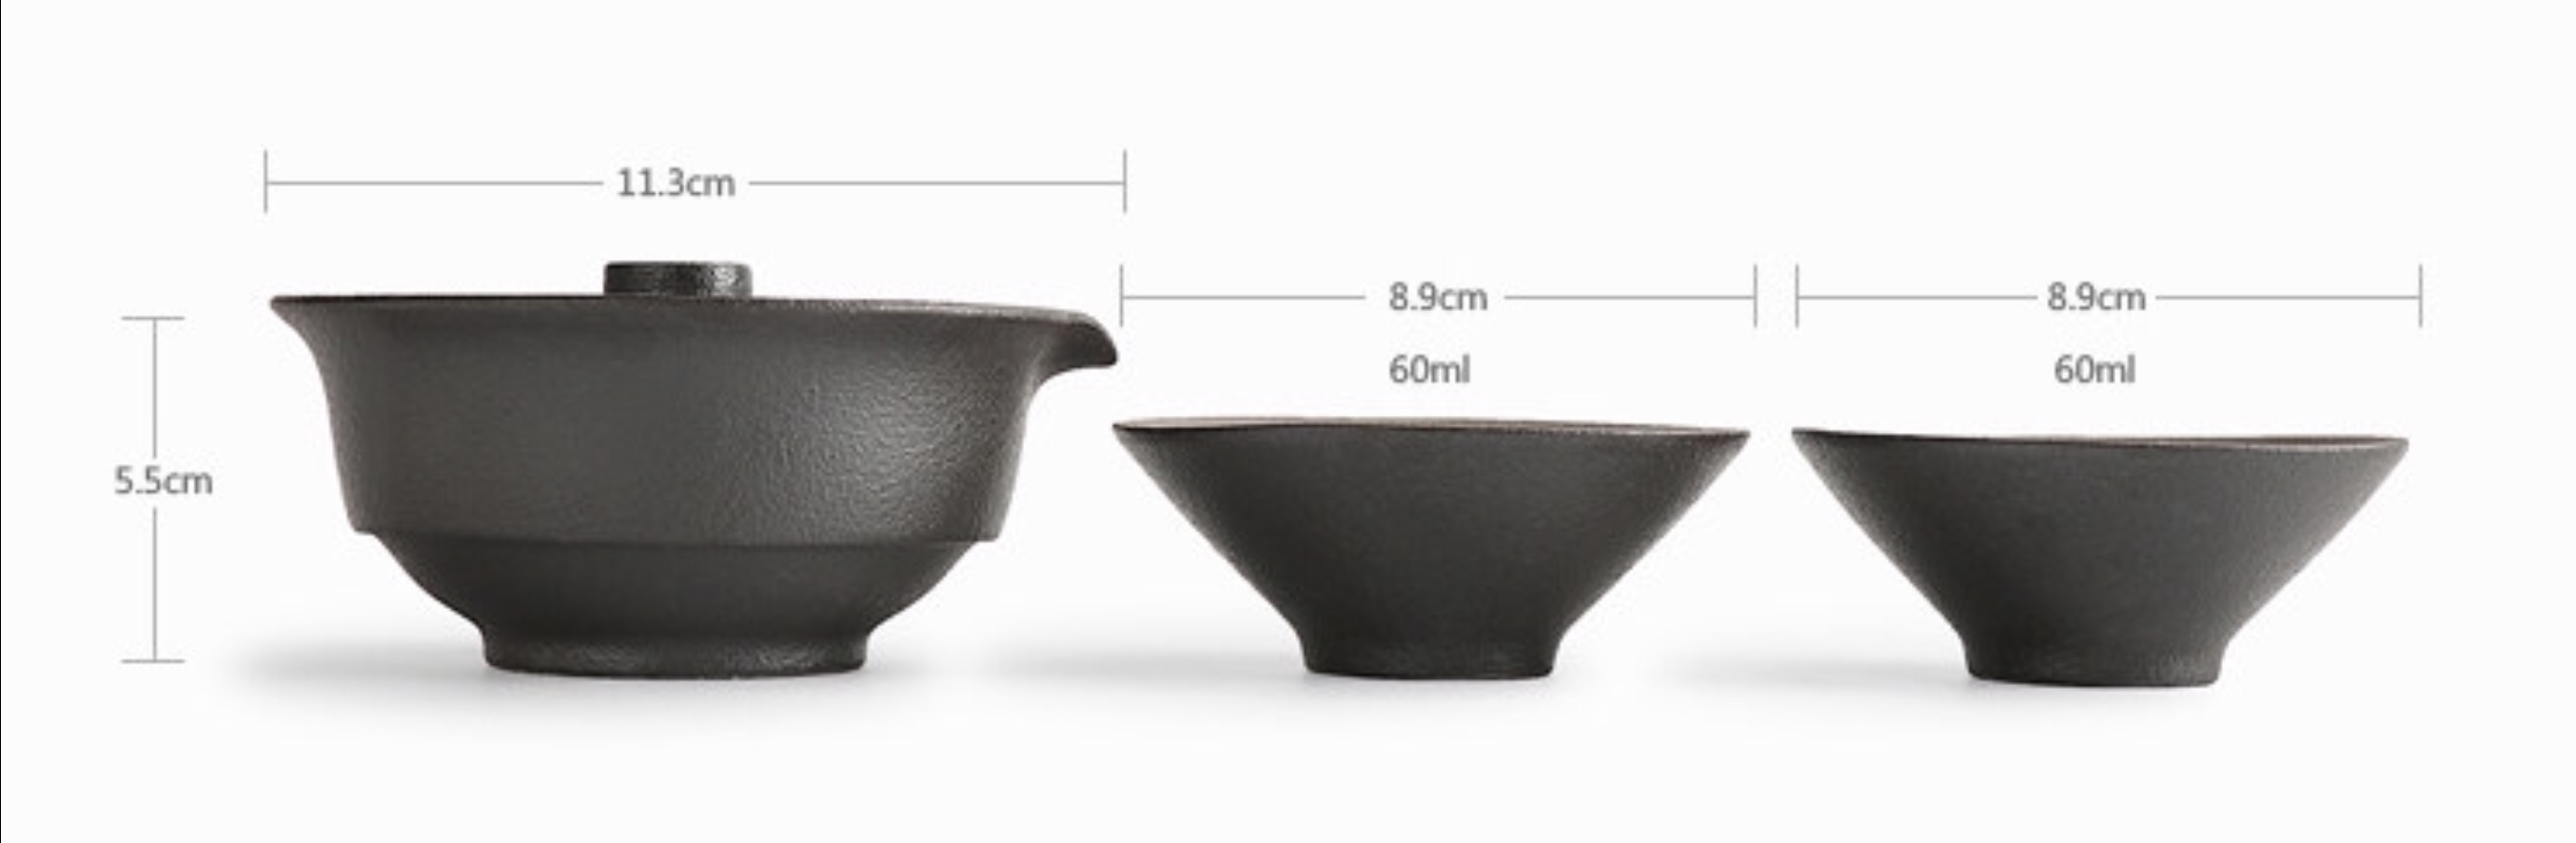 Measurements of Tea pot & cup